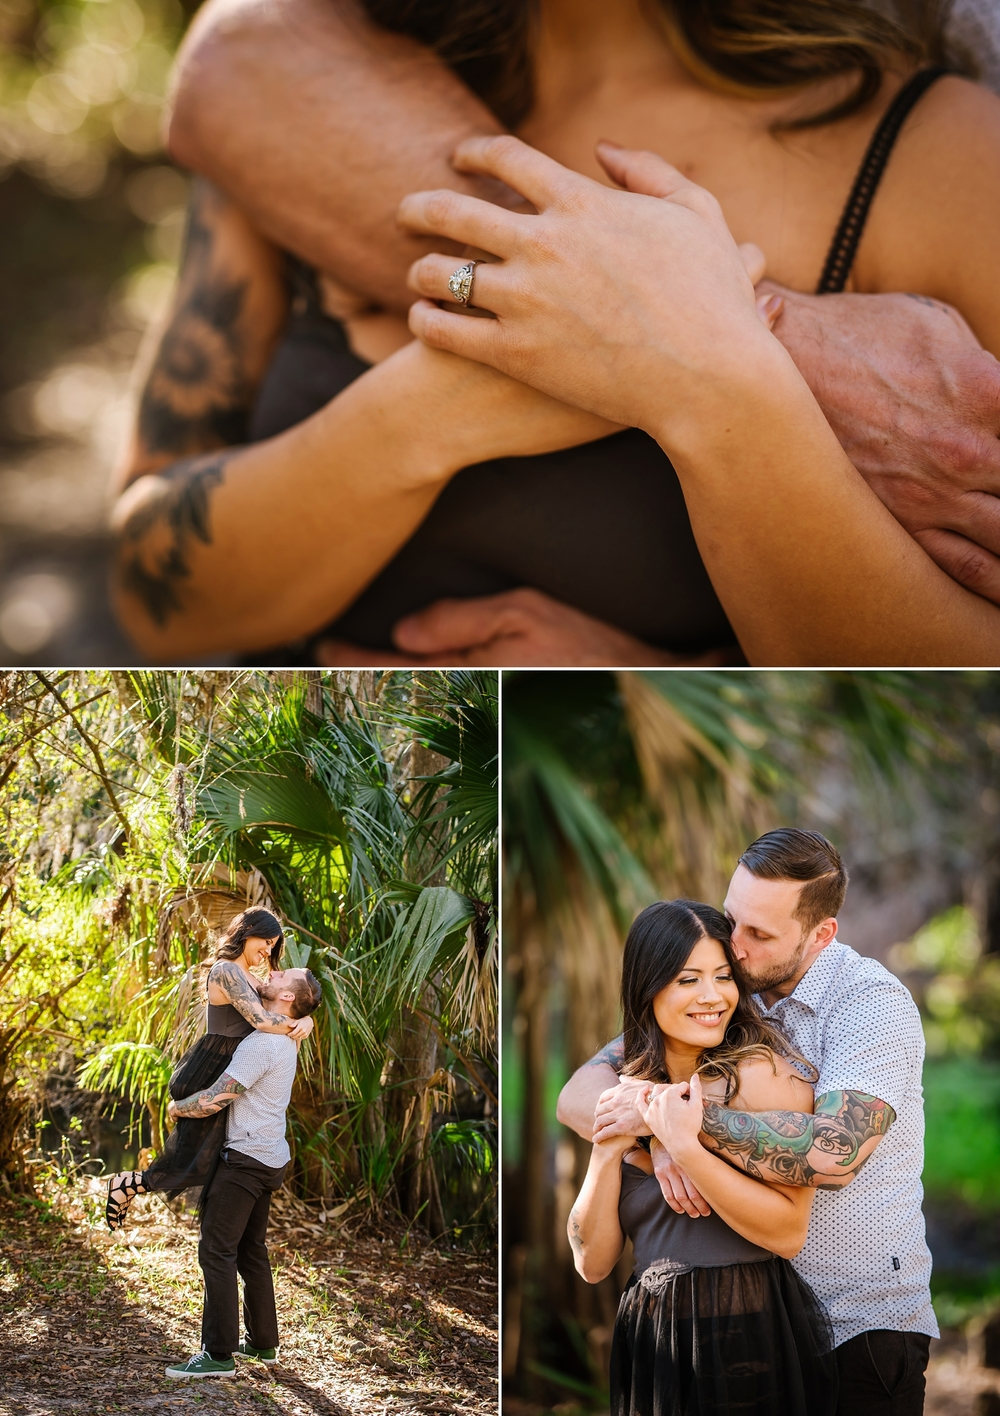 stylish-hip-engagement-session-tampa-ashlee-hamon_0002.jpg